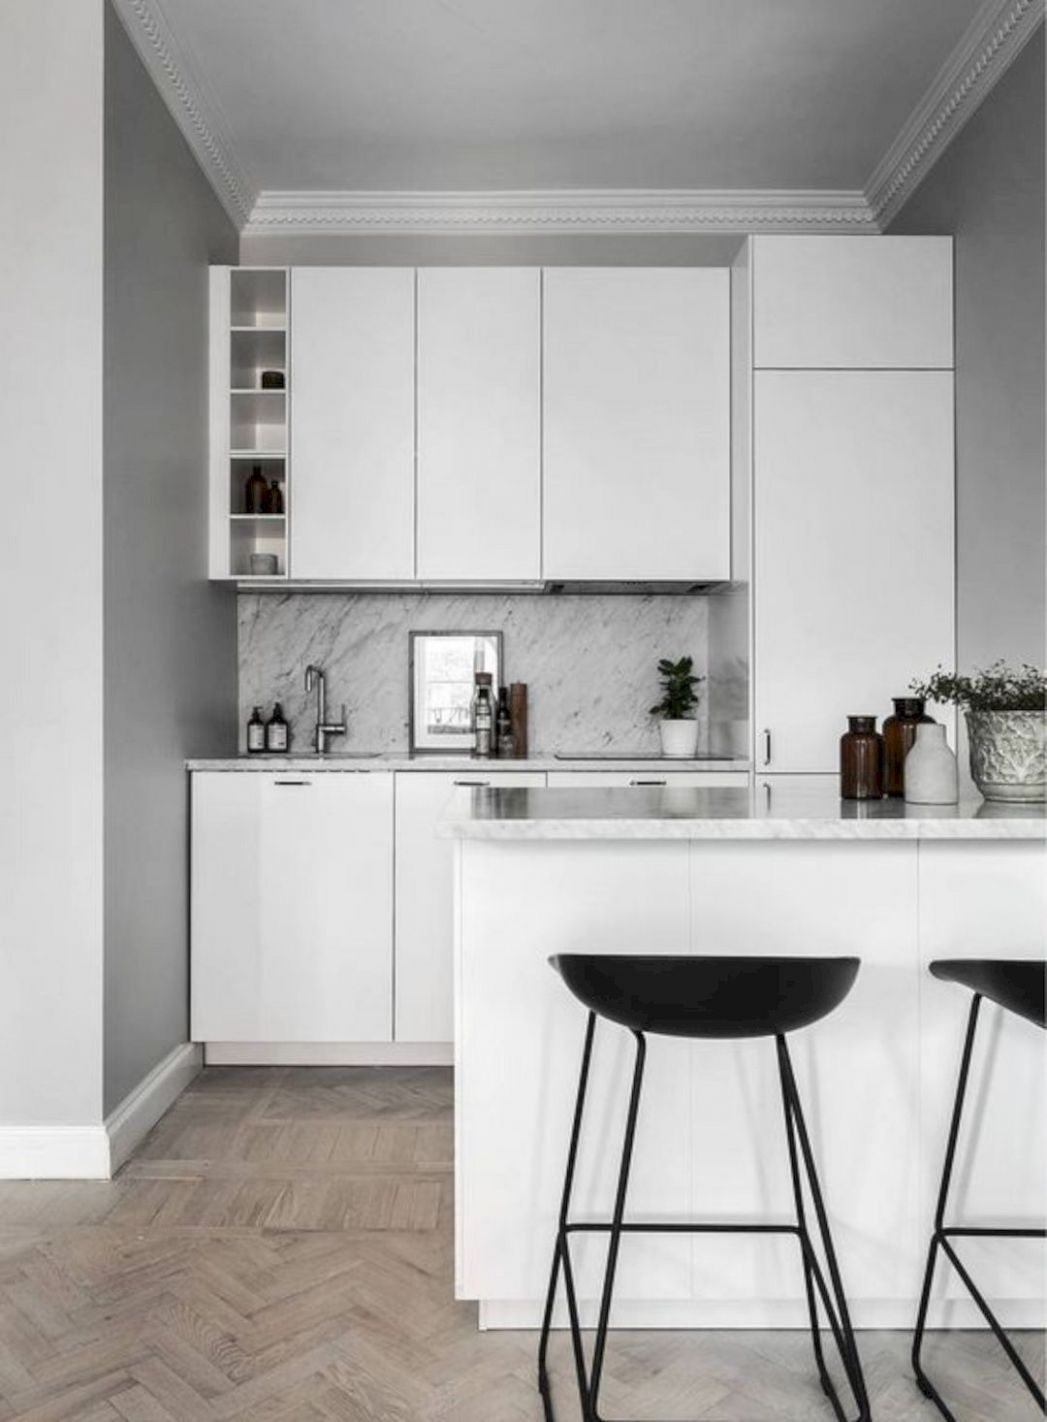 Top Apartment Kitchen Designs Design Listicle Small Photos Room ...